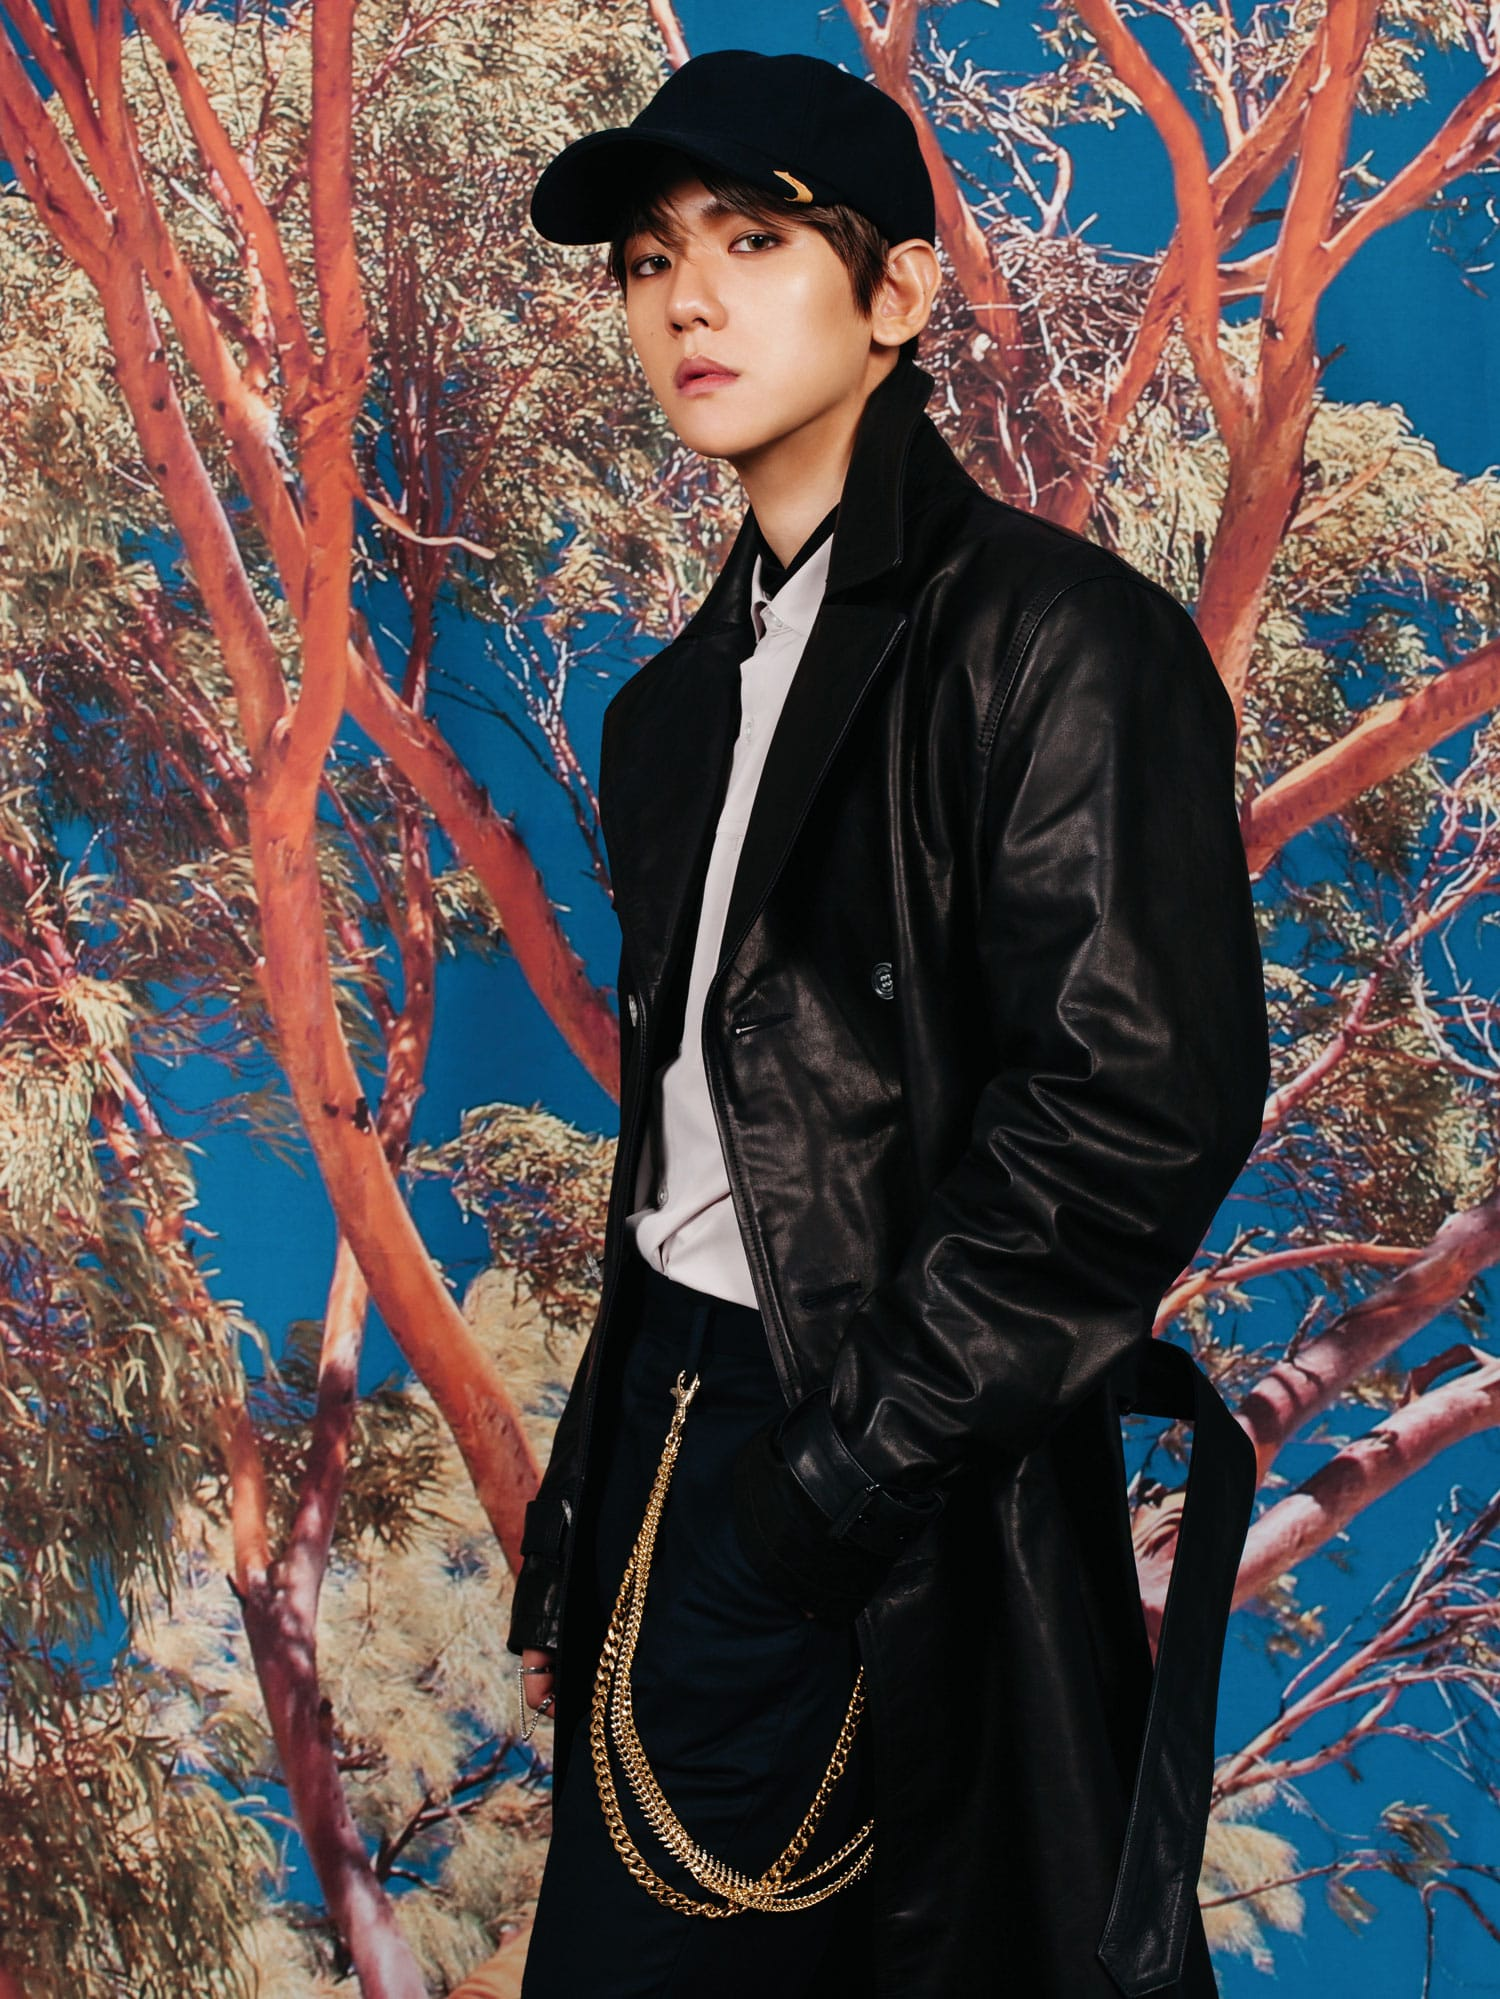 Update Exo S Xiumin Is Ready For Don T Mess Up My Tempo Comeback